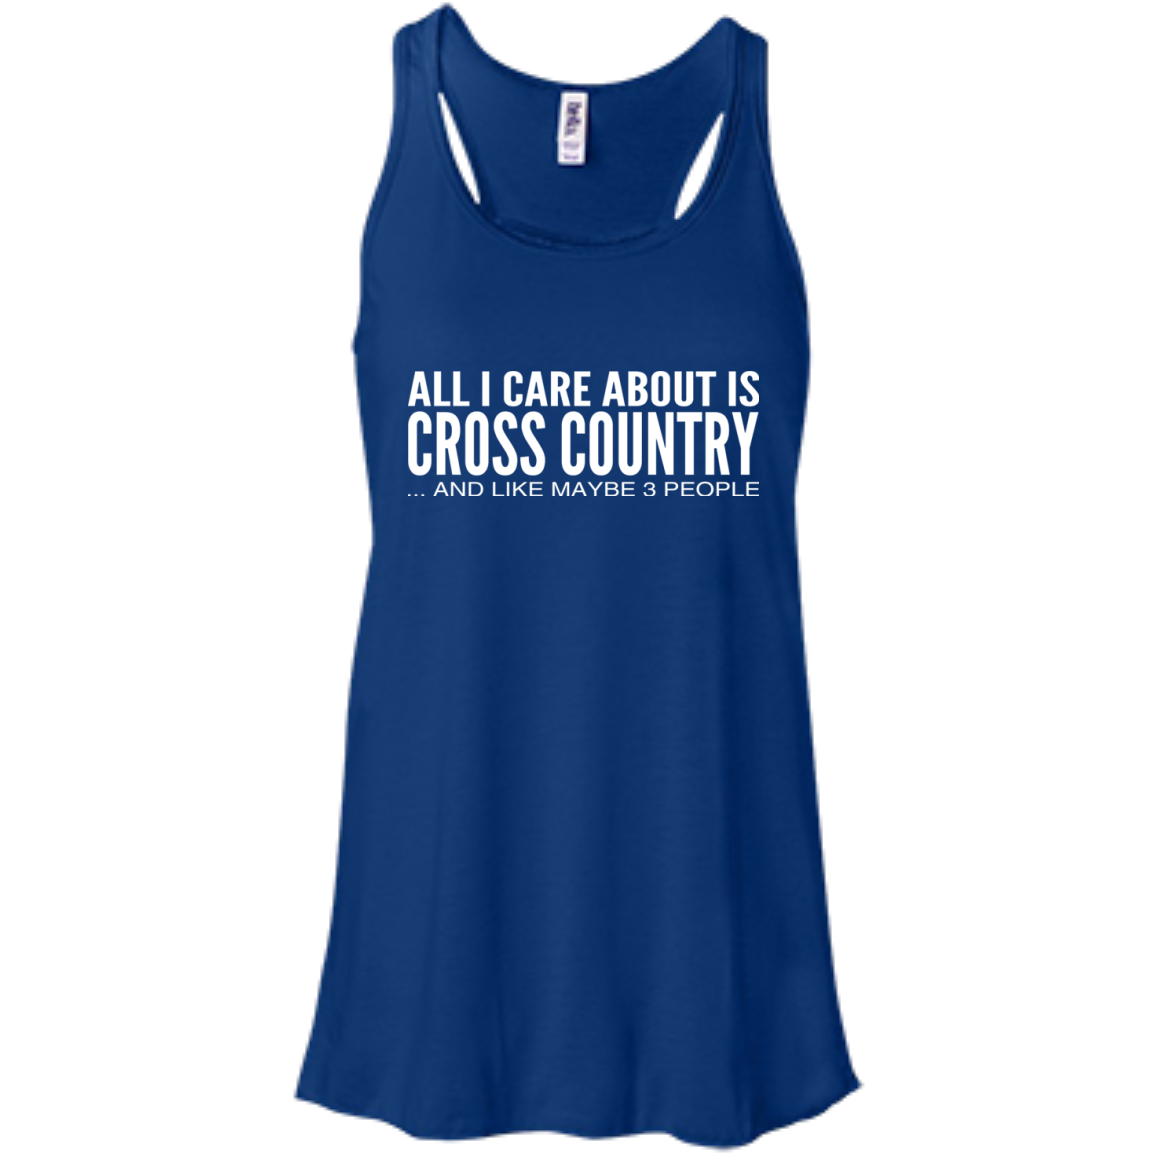 All I Care About Is Cross Country And Like Maybe 3 People Flowy Racerback Tanks